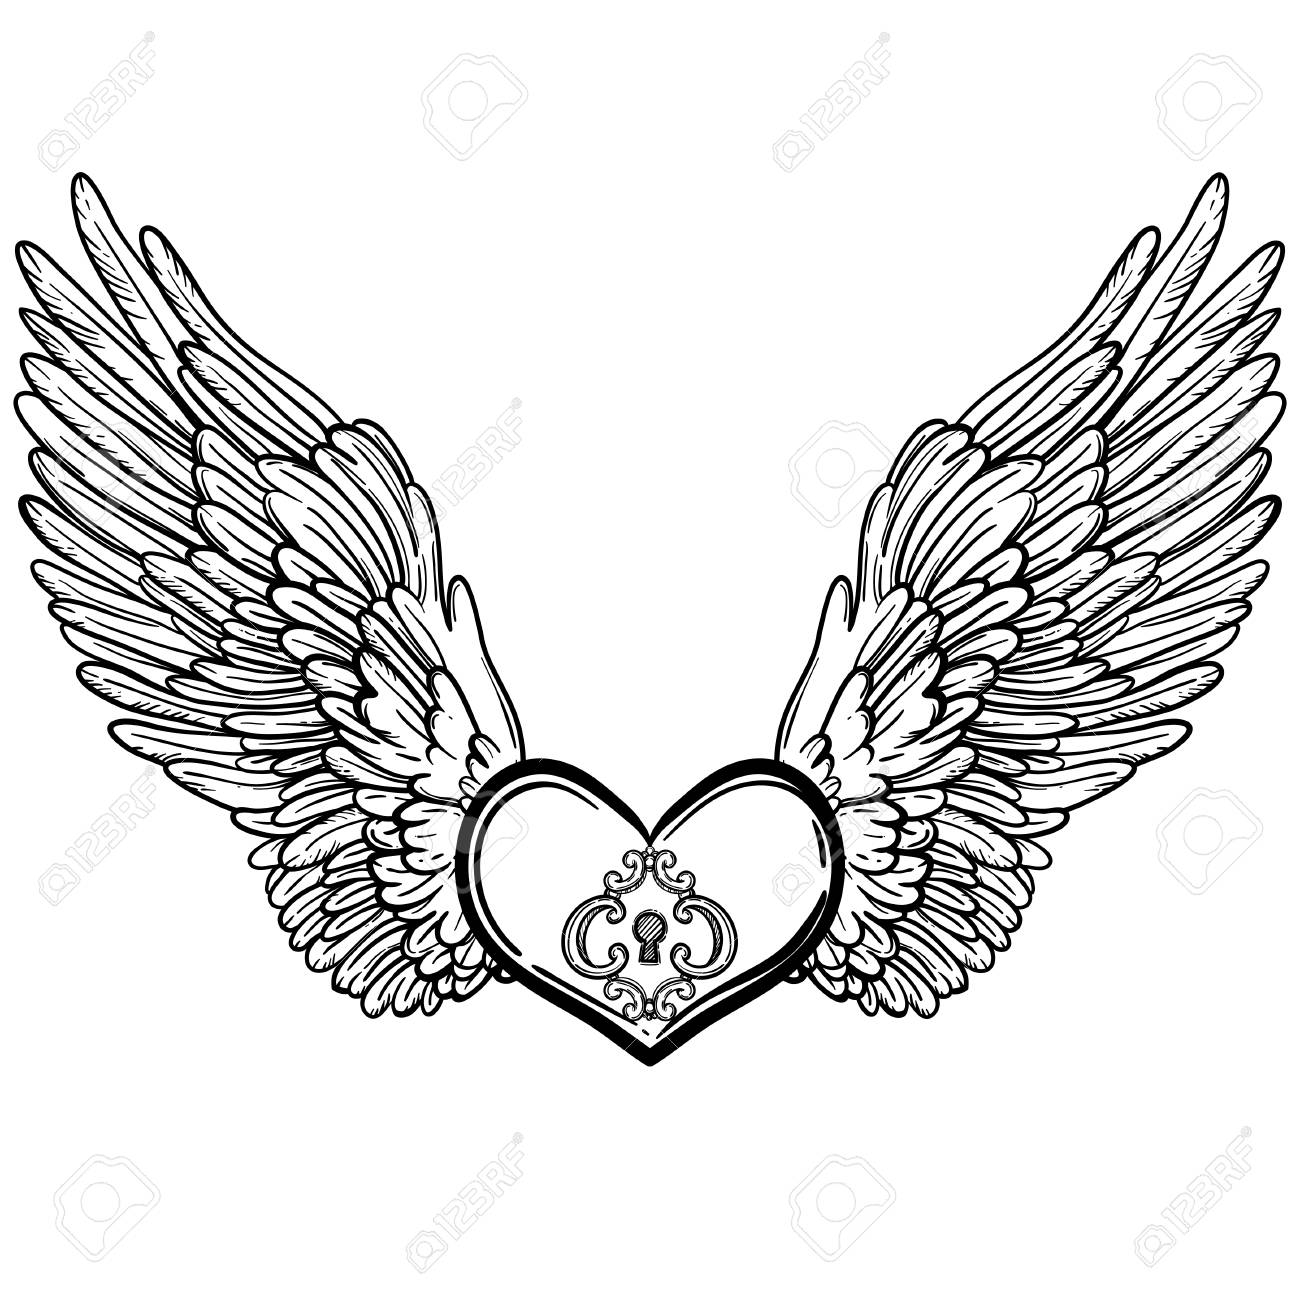 Line Art Illustration Of Angel Wings And Heart Vintage Print